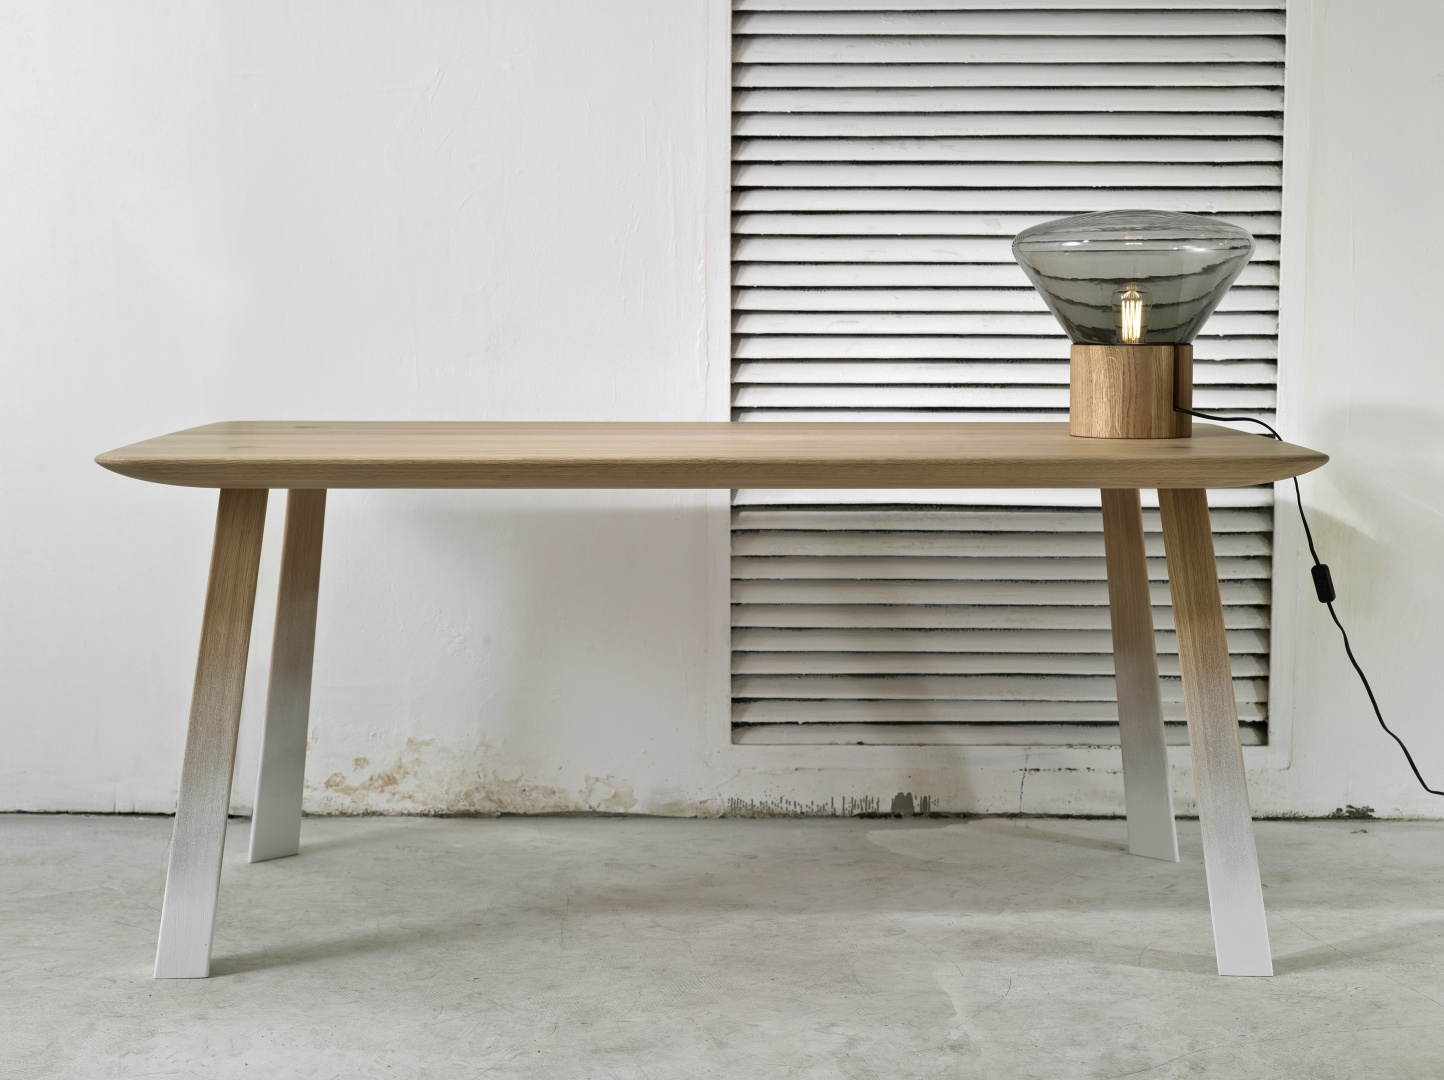 Stix table by dan yeffet and lucie koldova work dan for Spl table 98 99